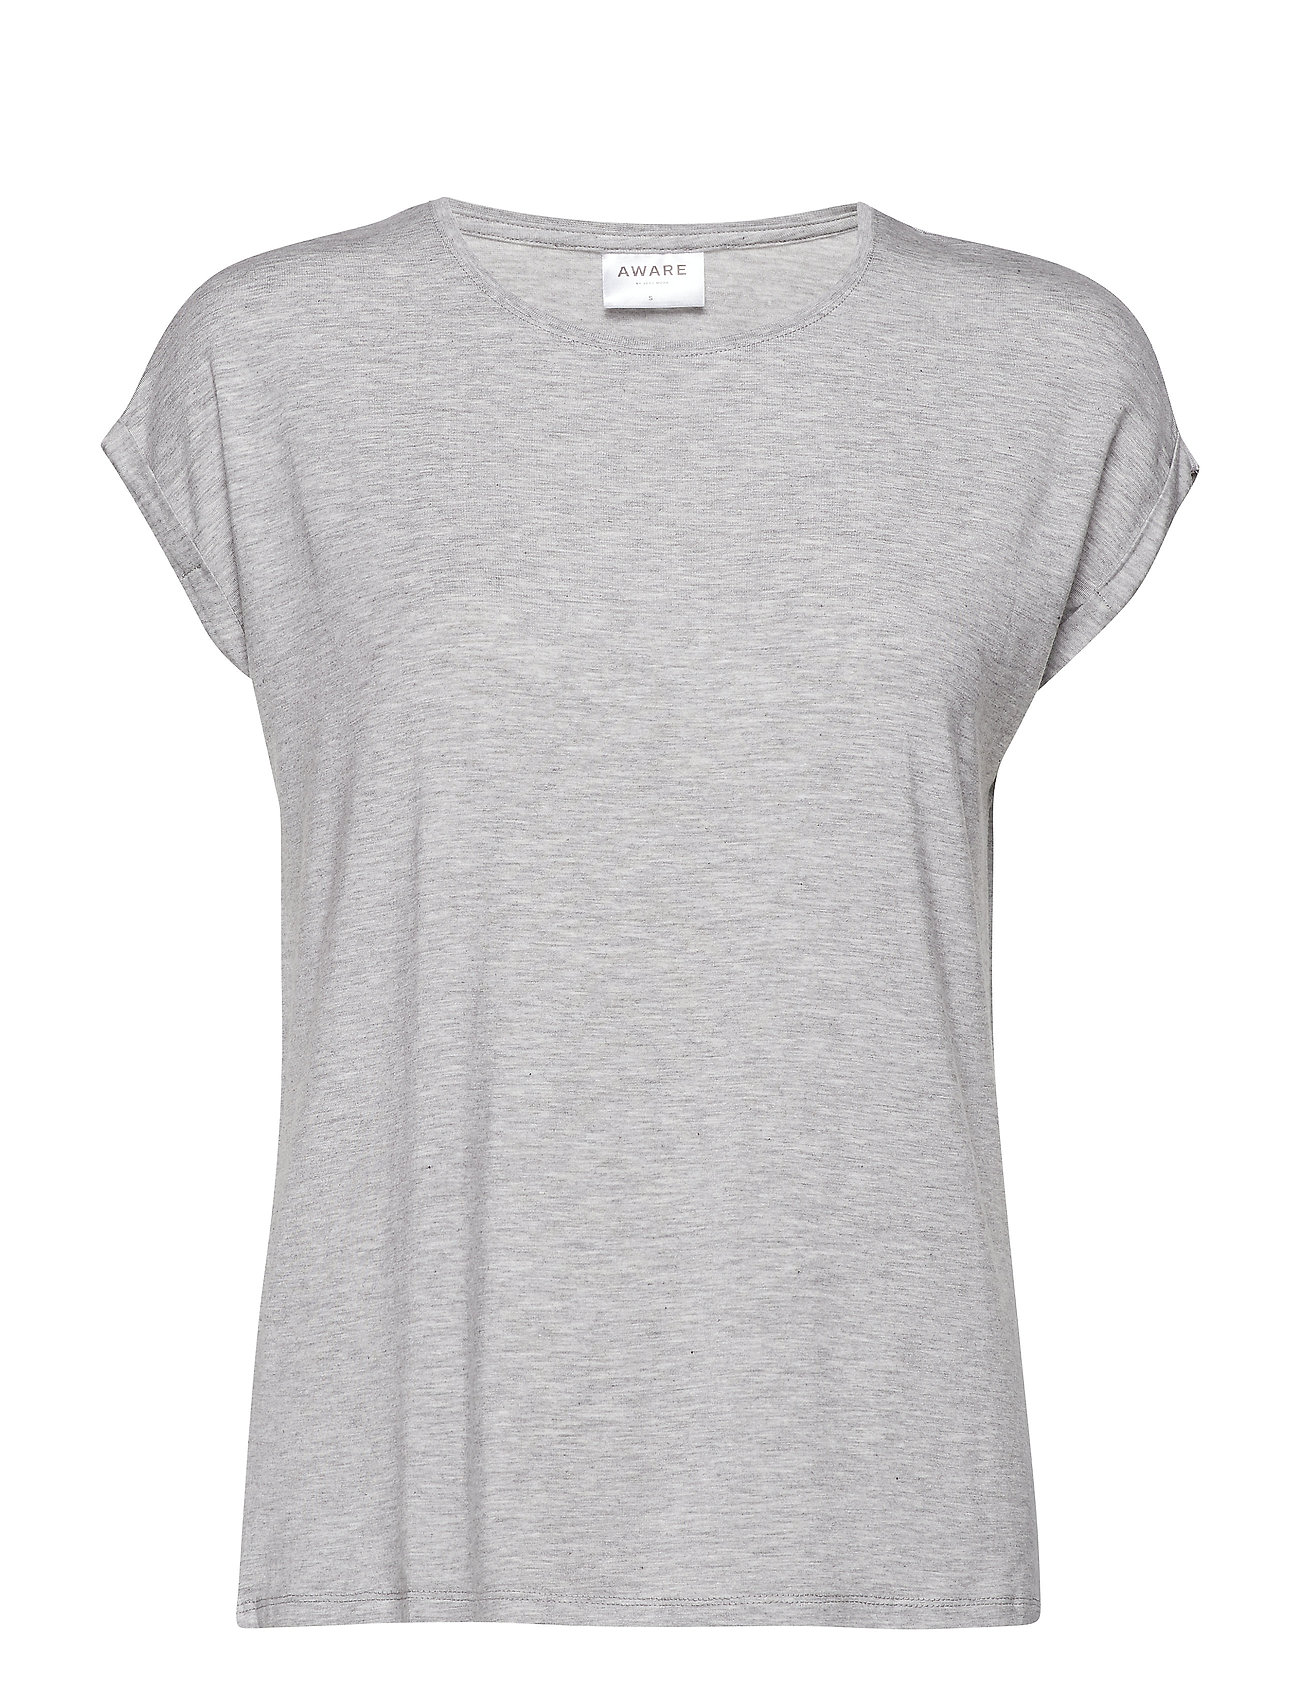 Vero Moda VMAVA PLAIN SS TOP GA NOOS - LIGHT GREY MELANGE